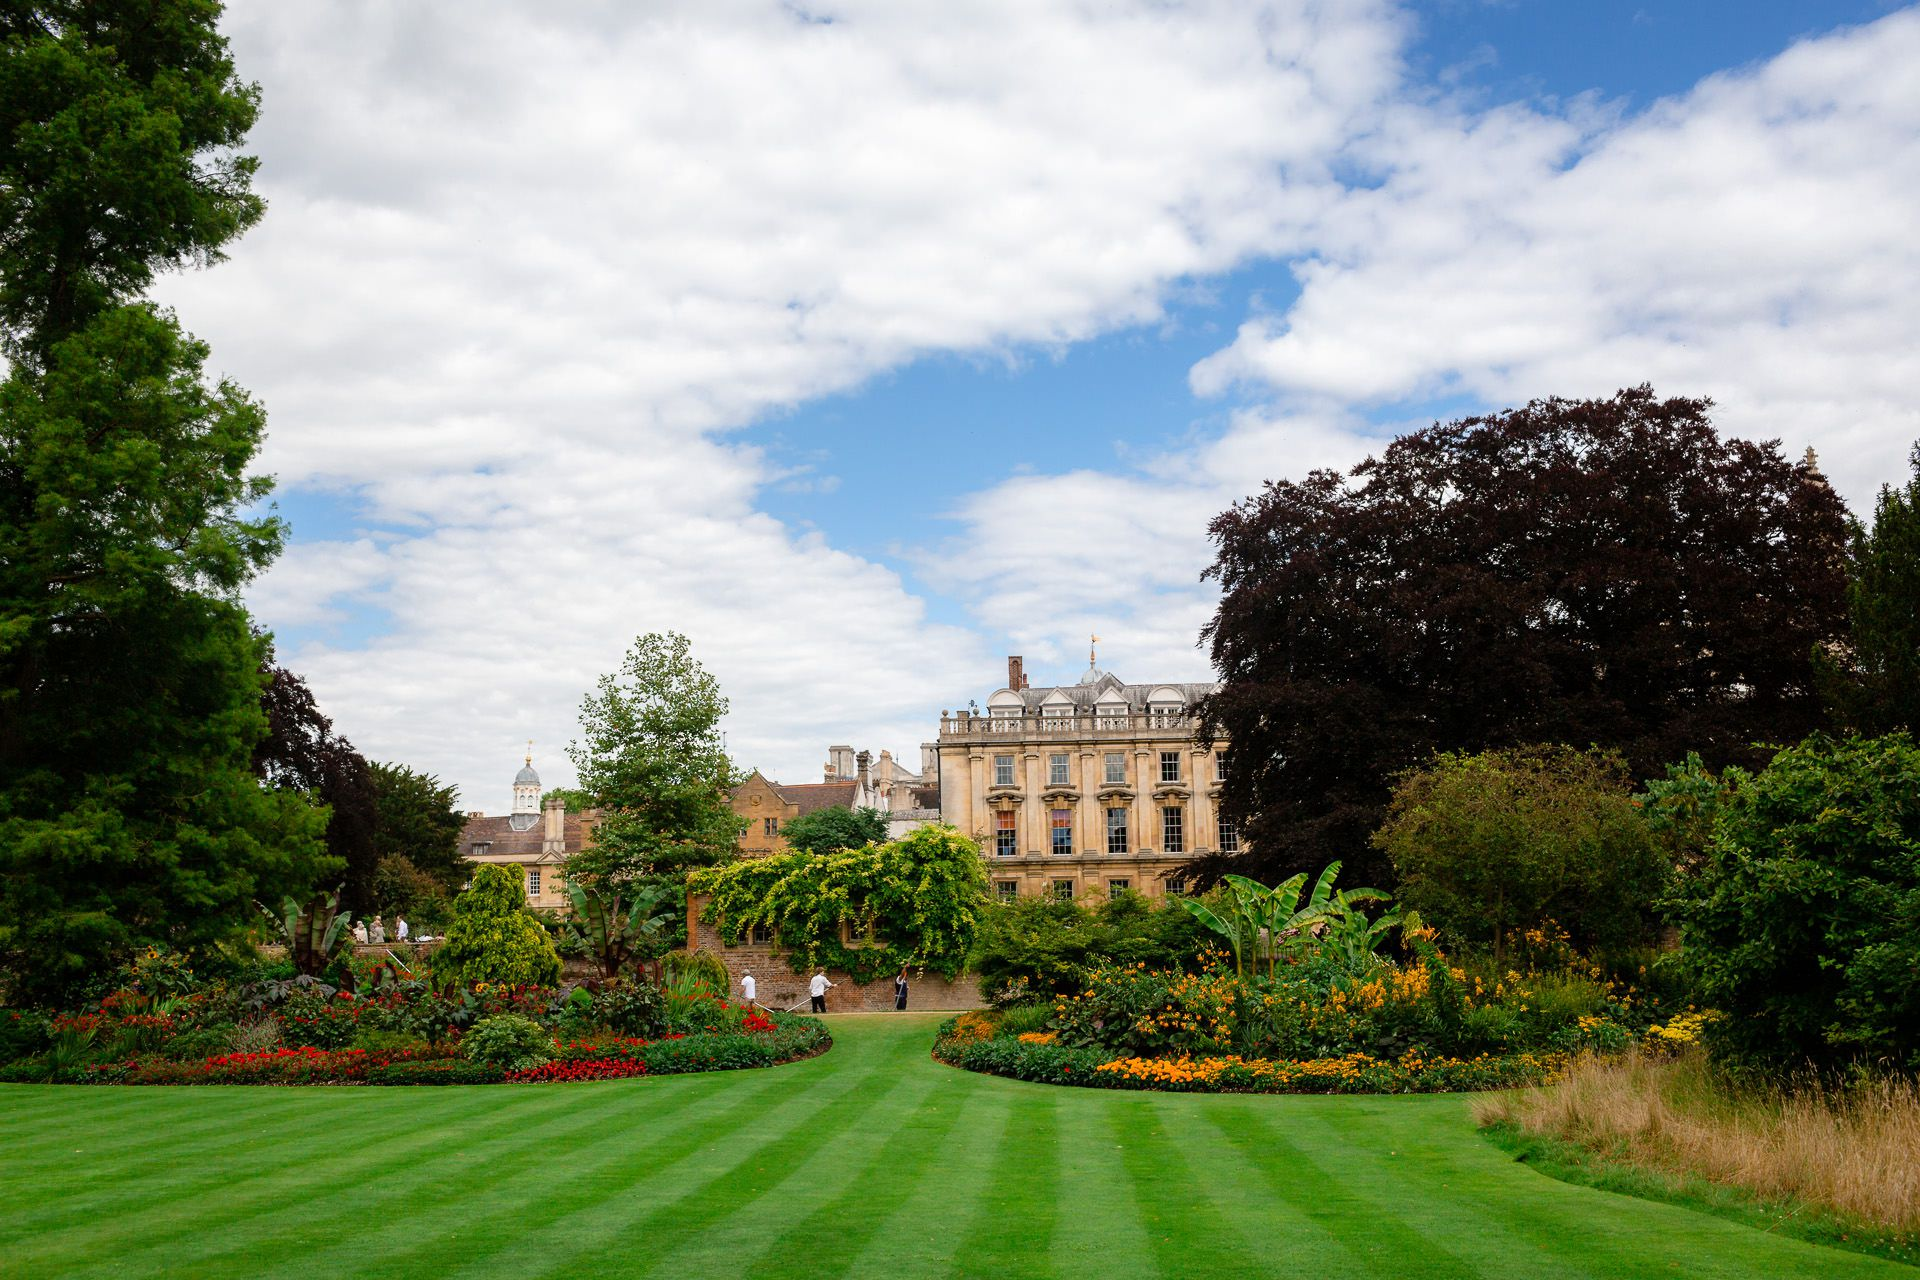 photo of the garden and palace